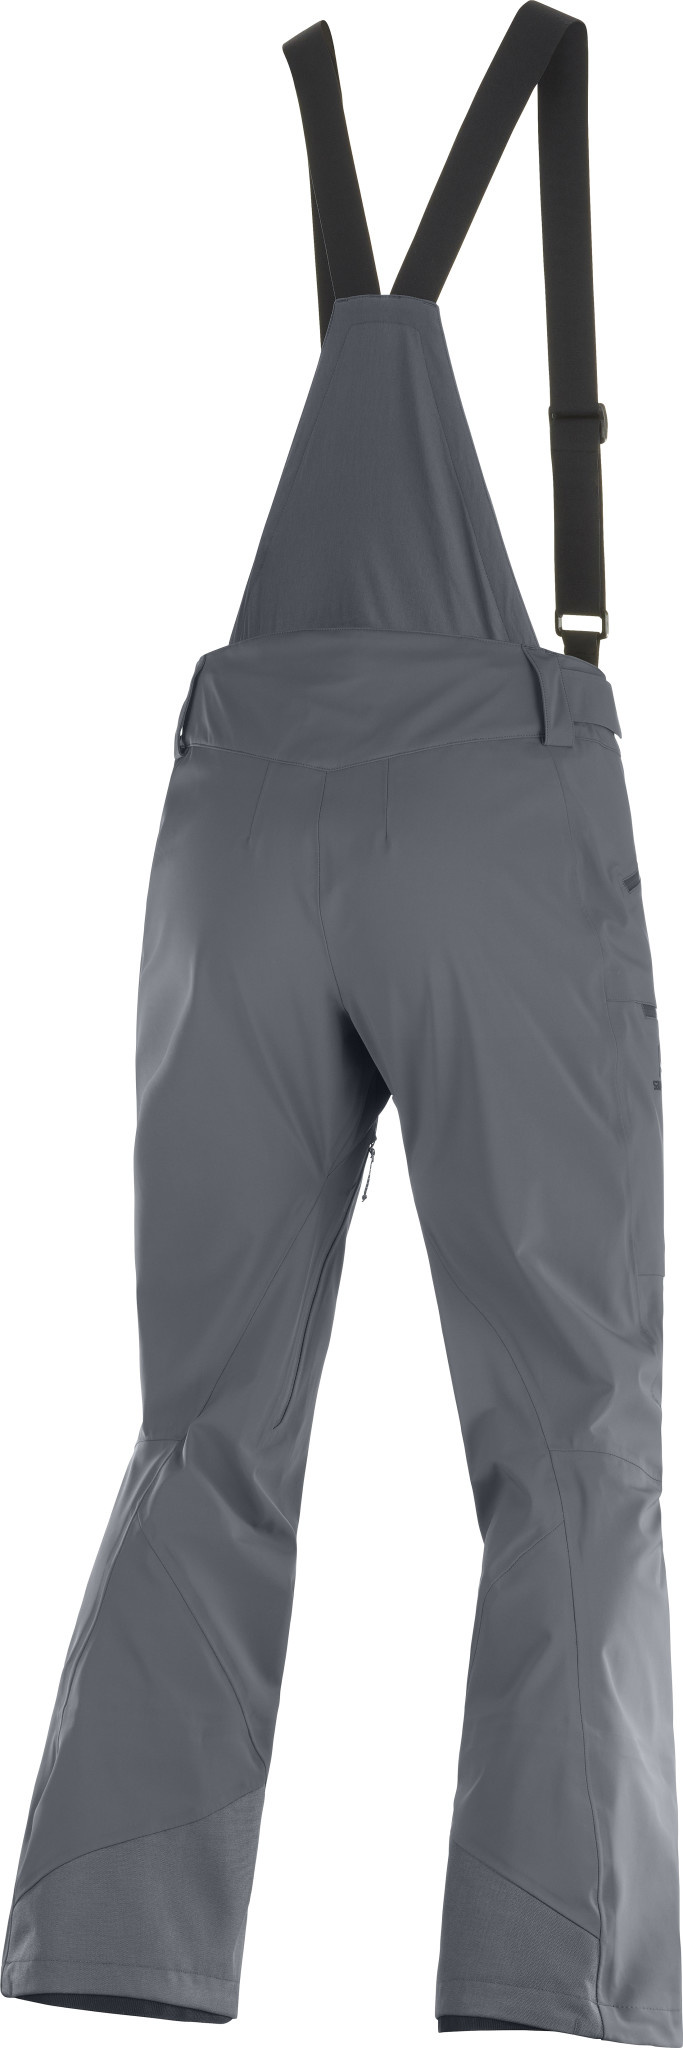 OUTLAW 3L SHELL PANT M-3